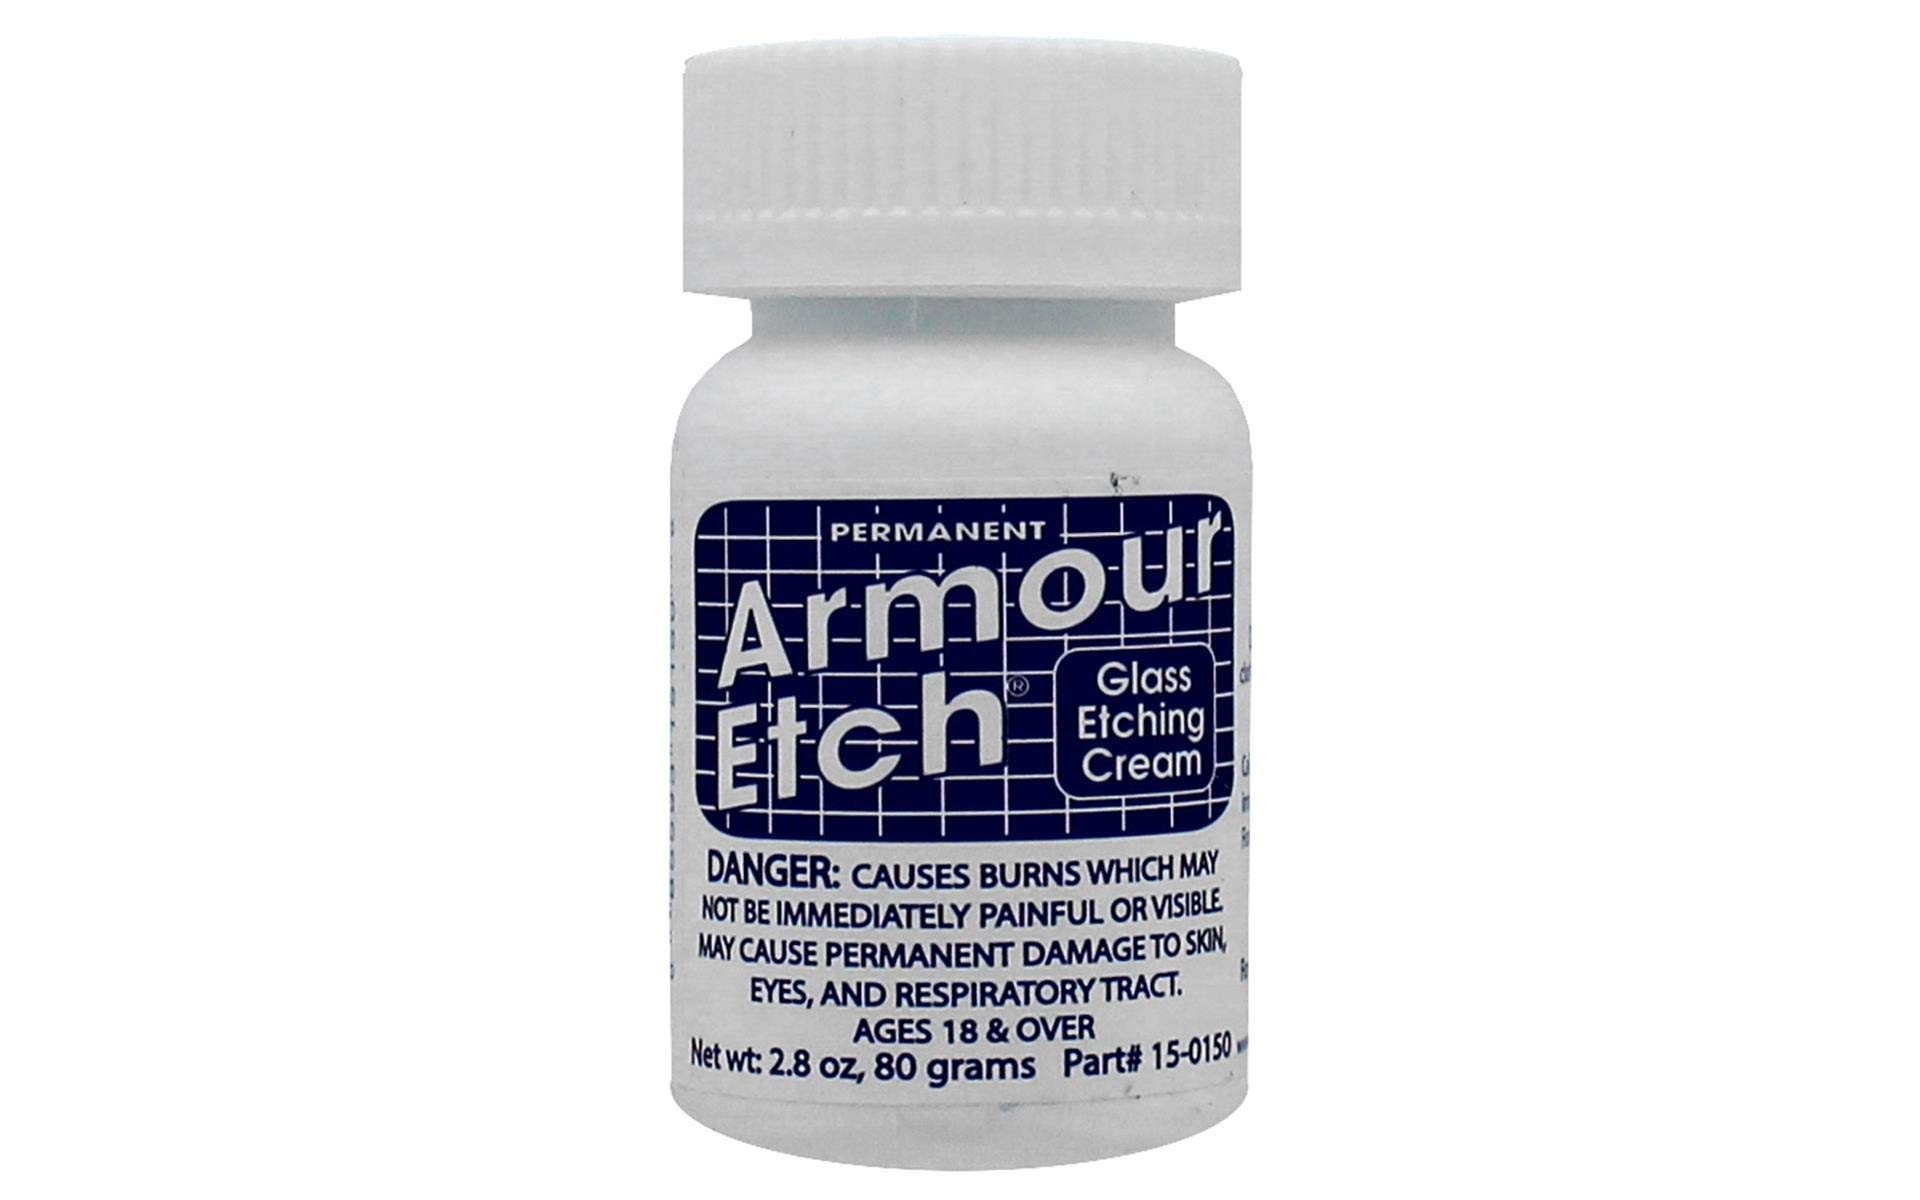 Armour Etch - Glass Etching Cream 80 grams.